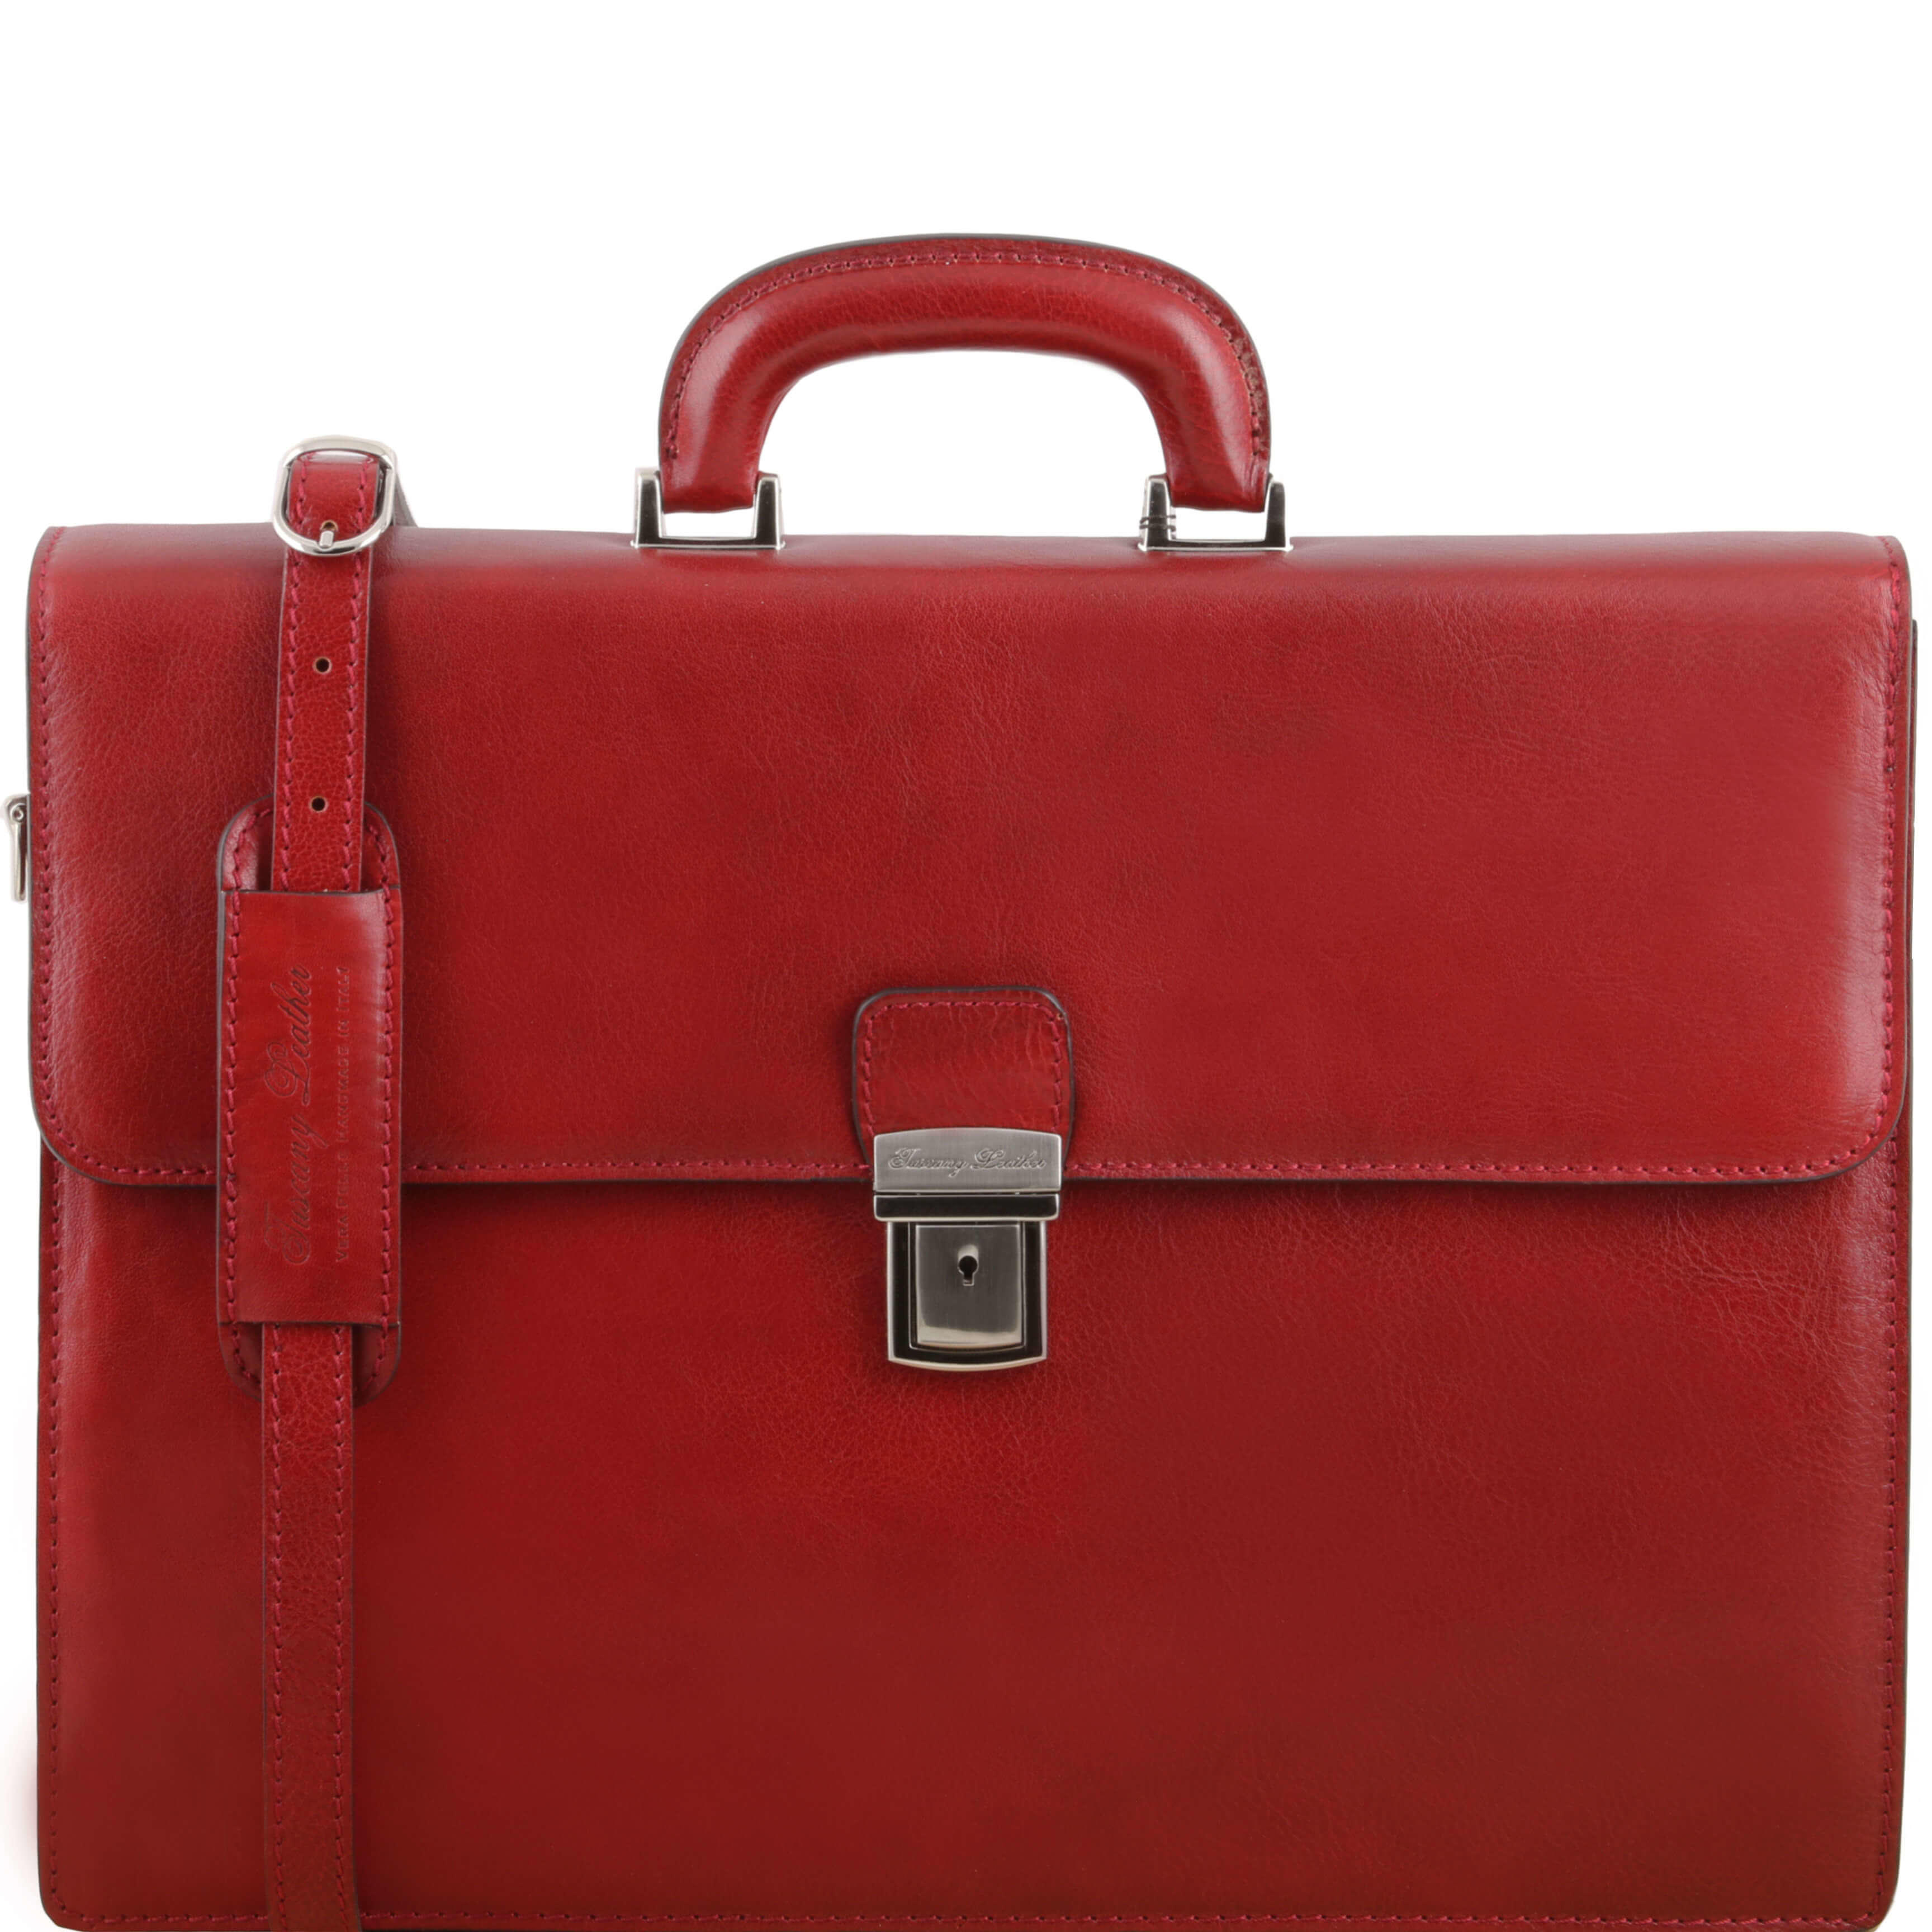 "TL141350 NEW Parma 2 Compartments Leather 15""Laptop-Briefcase-Bag & Shoulder Strap Red"